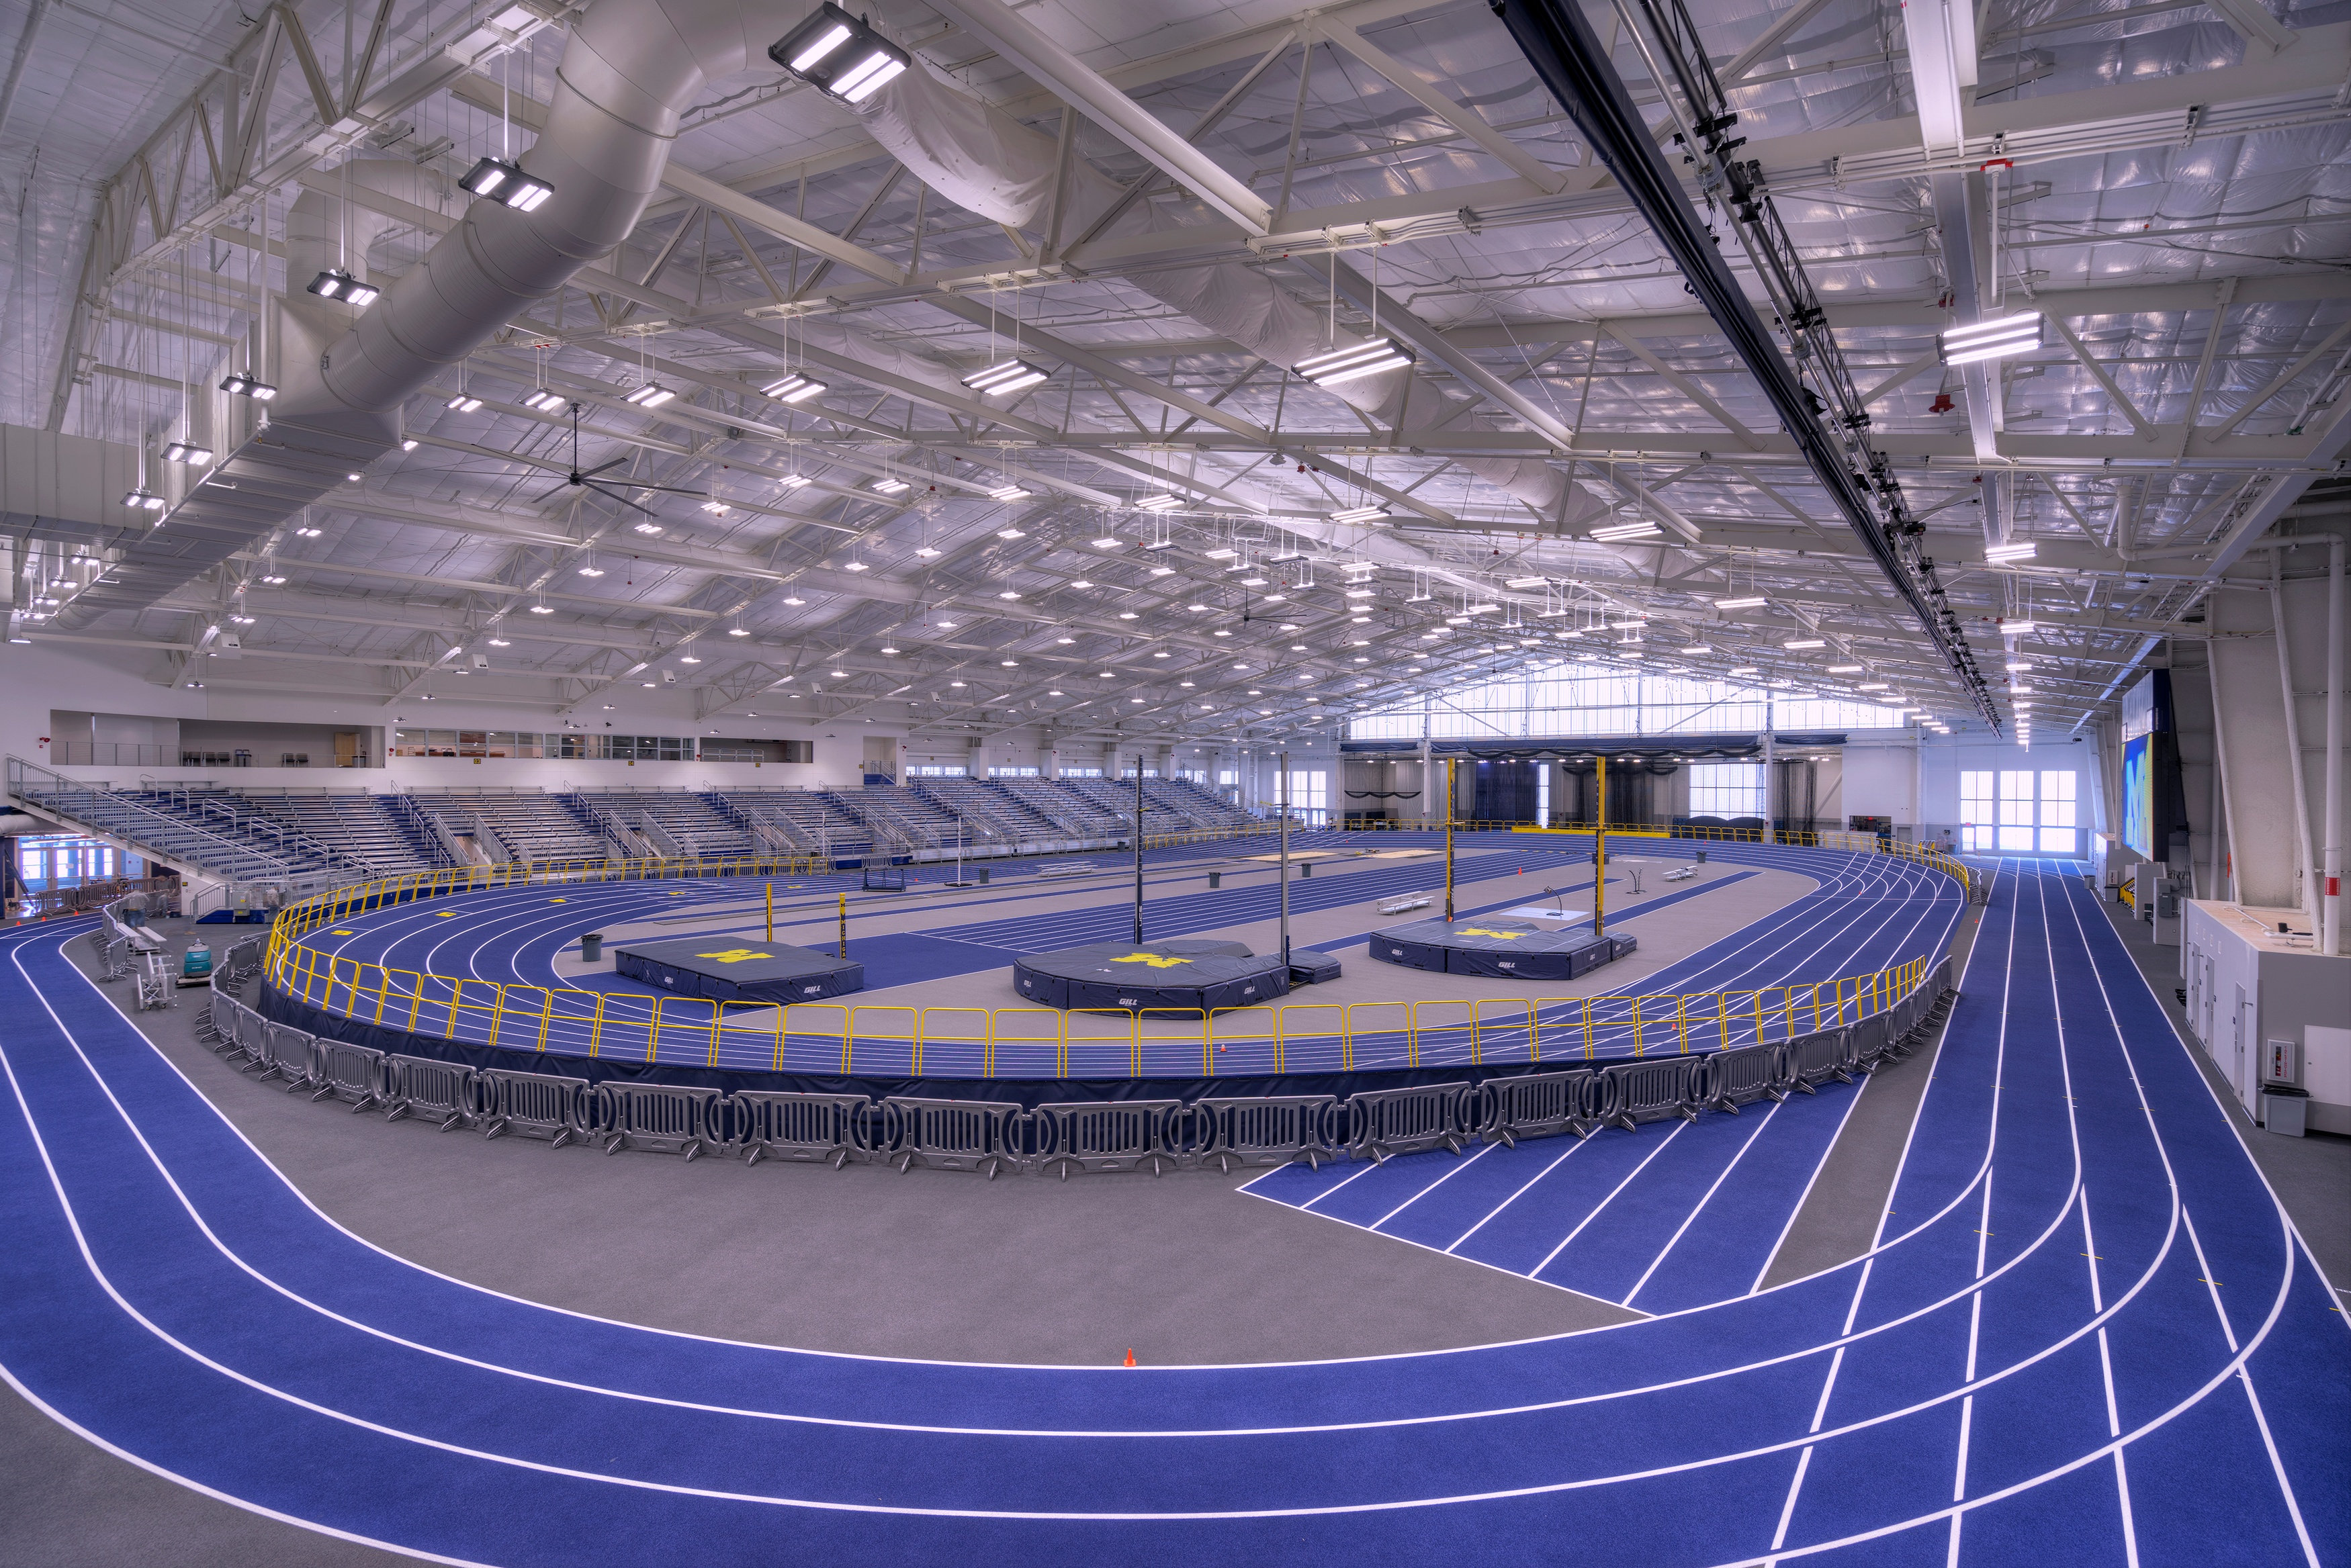 University of Michigan ASCP Project, with MEP Engineering and Lighting Design by PBA, Recognized with Pyramid Award from the Washtenaw Contractors Association (WCA)